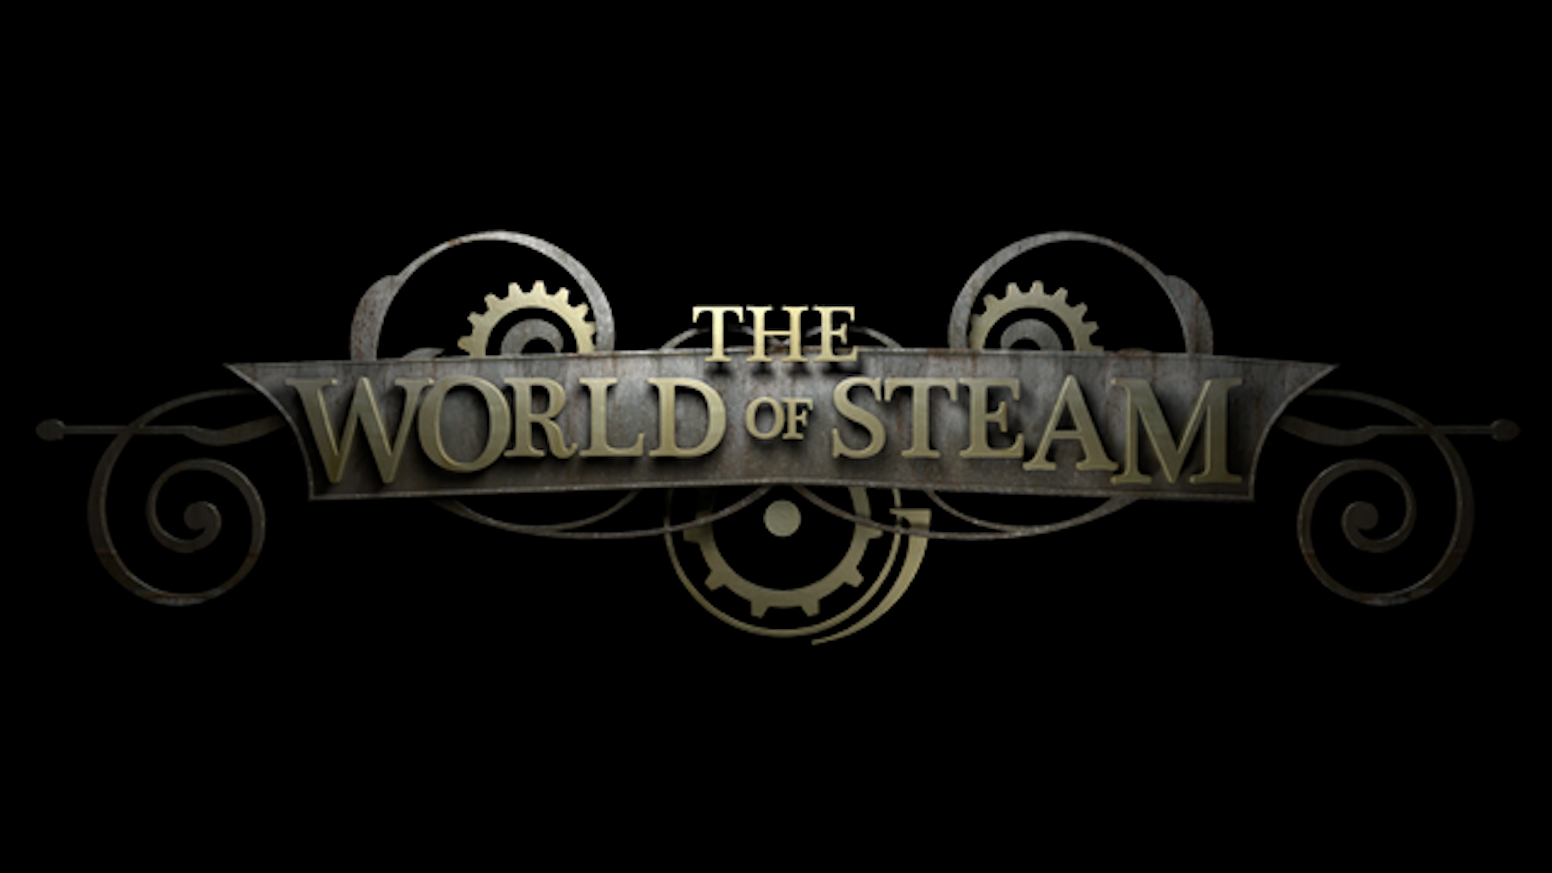 The World of Steam is a set of Twilight Zone-like episodes set in a Steampunk universe.